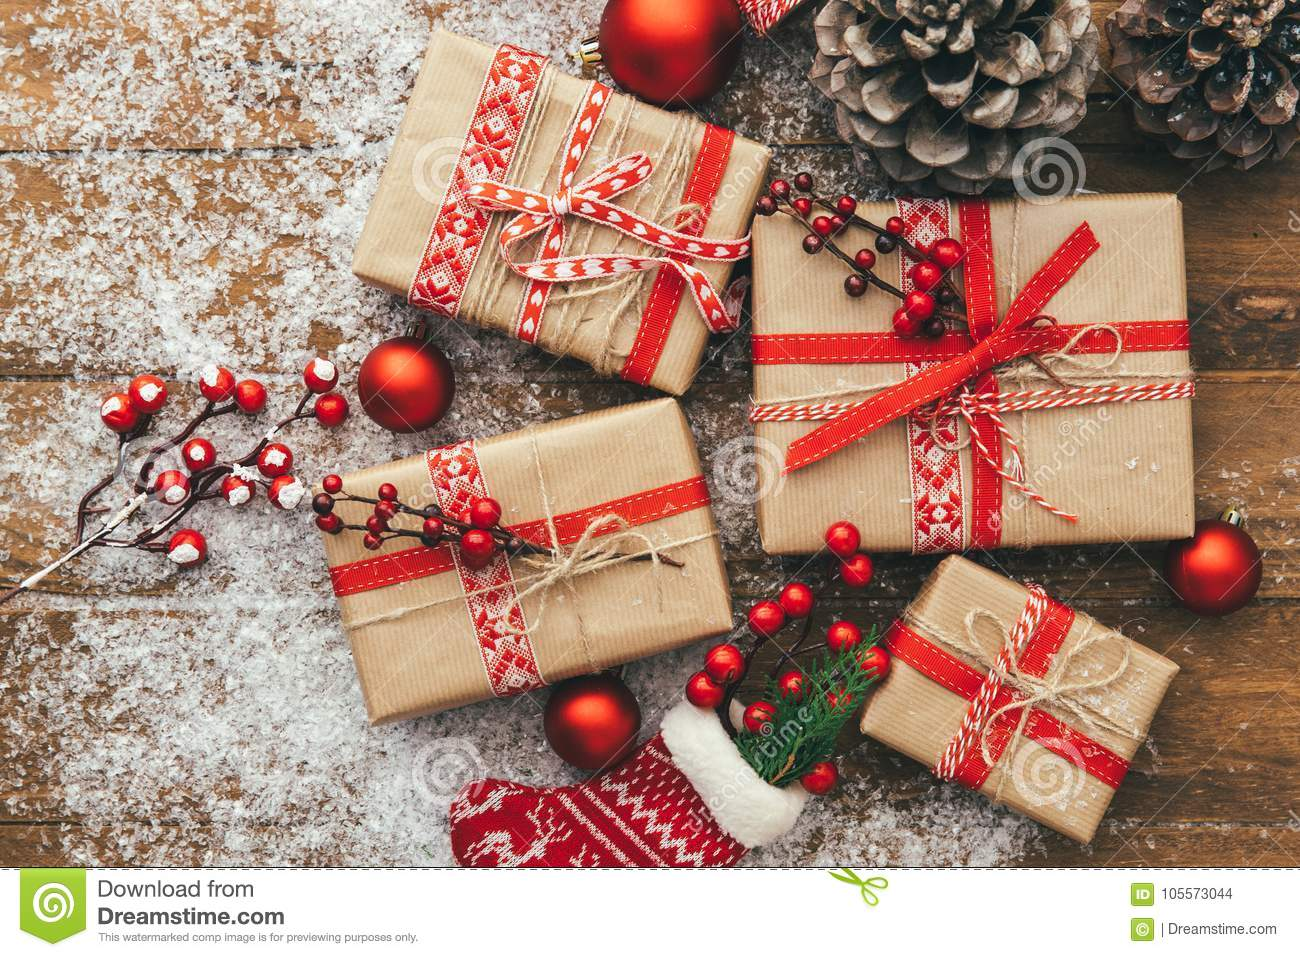 Christmas Gift Box And Decorations On Wooden Background Merry Christmas And Happy New Year Concept Stock Photo Image Of Holiday Berry 105573044